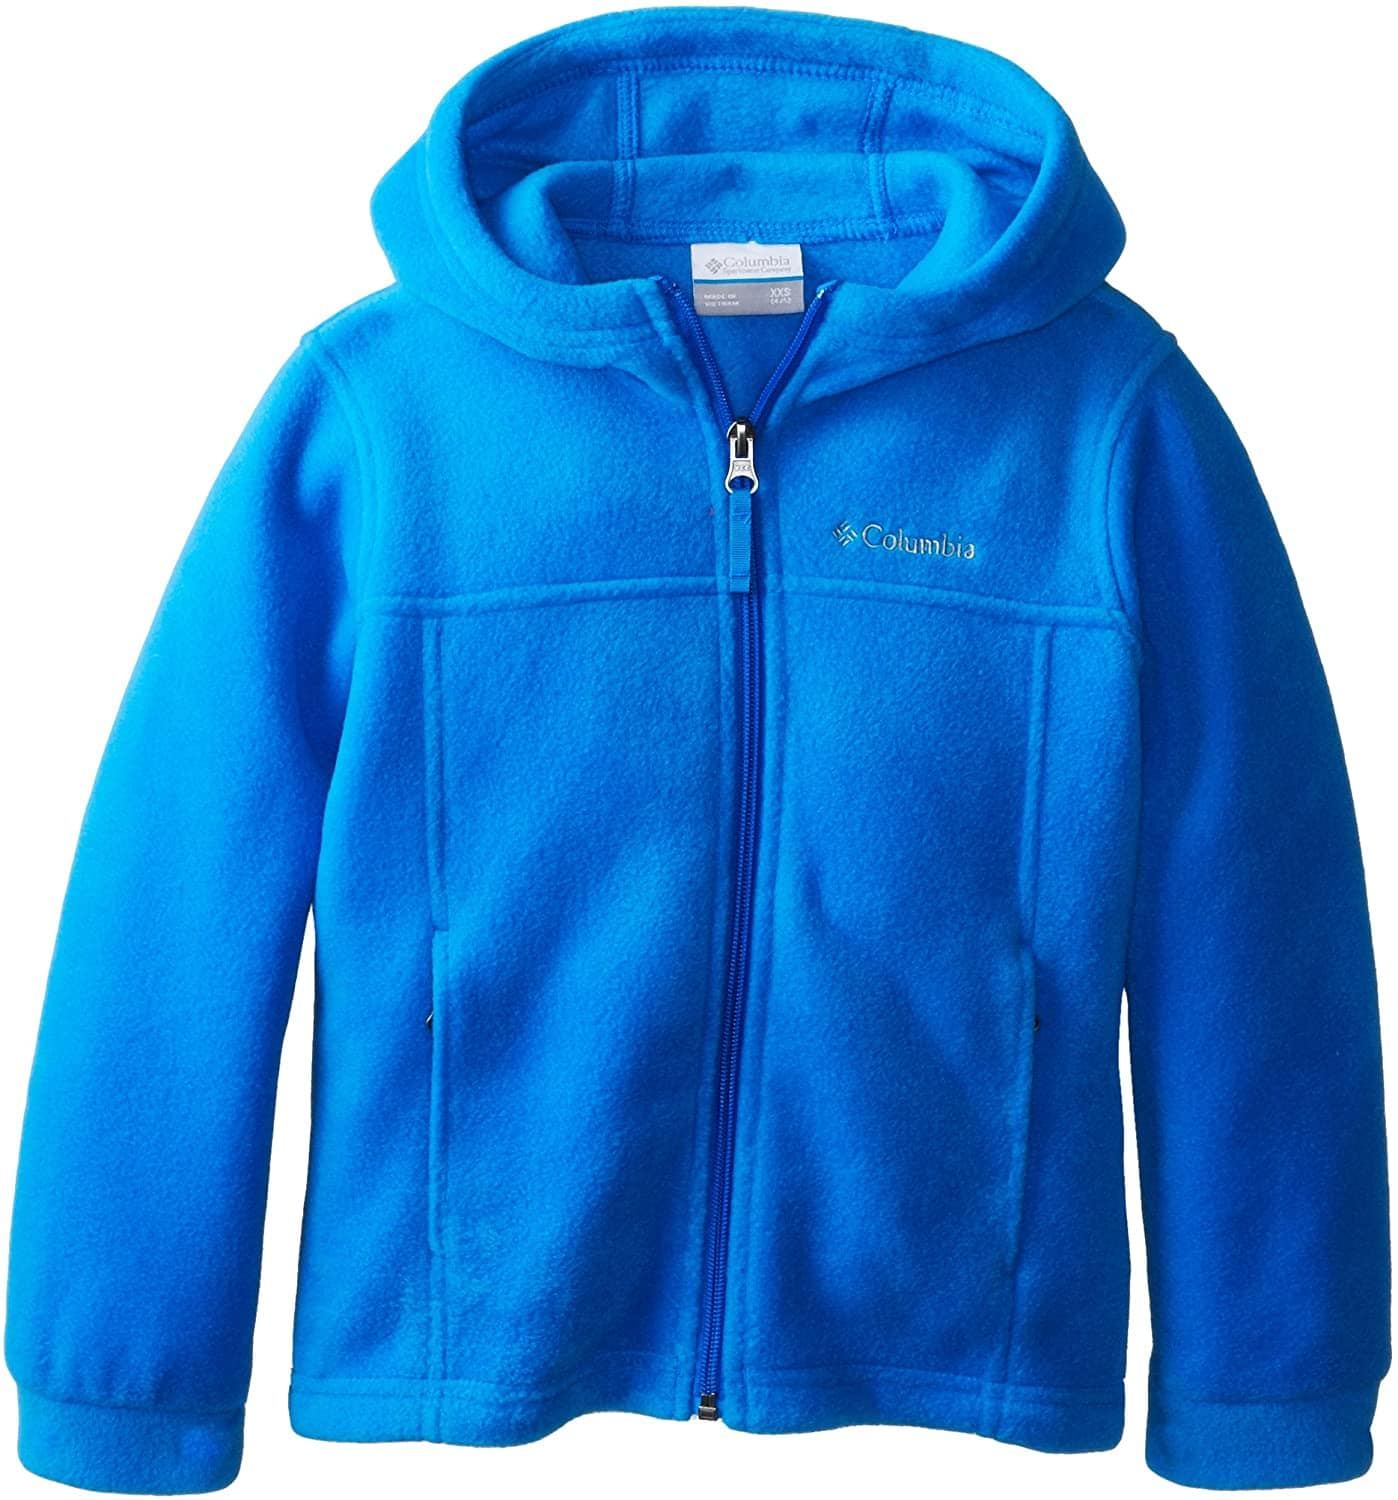 Columbia has a mini version of the Steens Mountain II fleece jacket for the boys